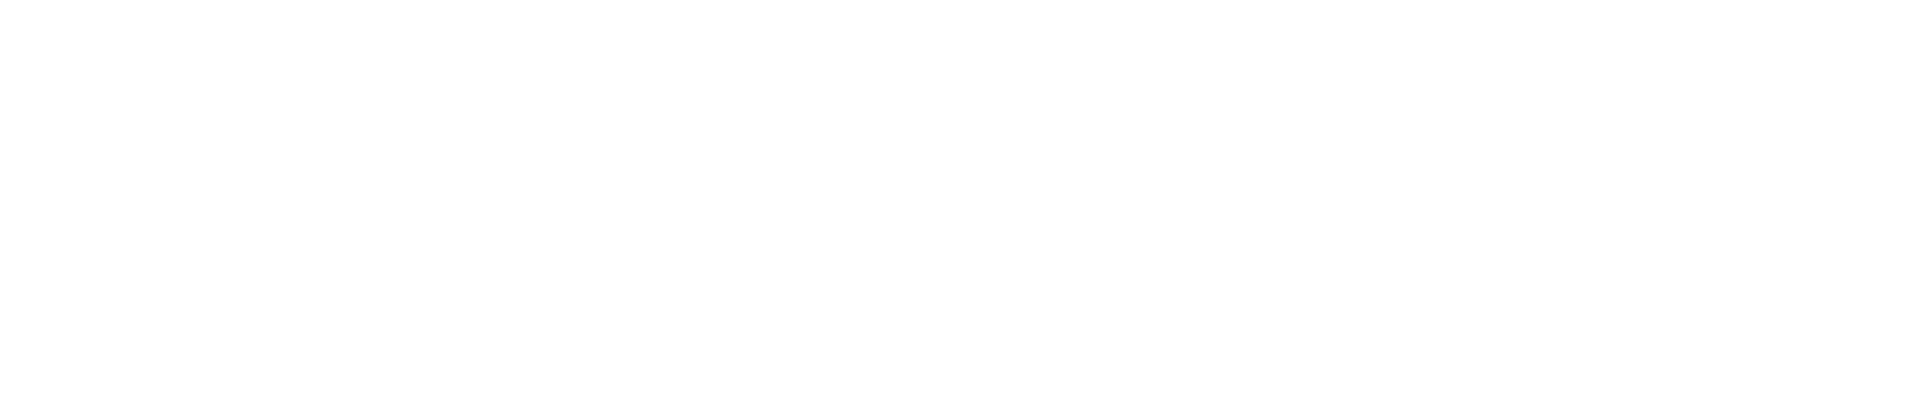 The Myers Automotive Group logo